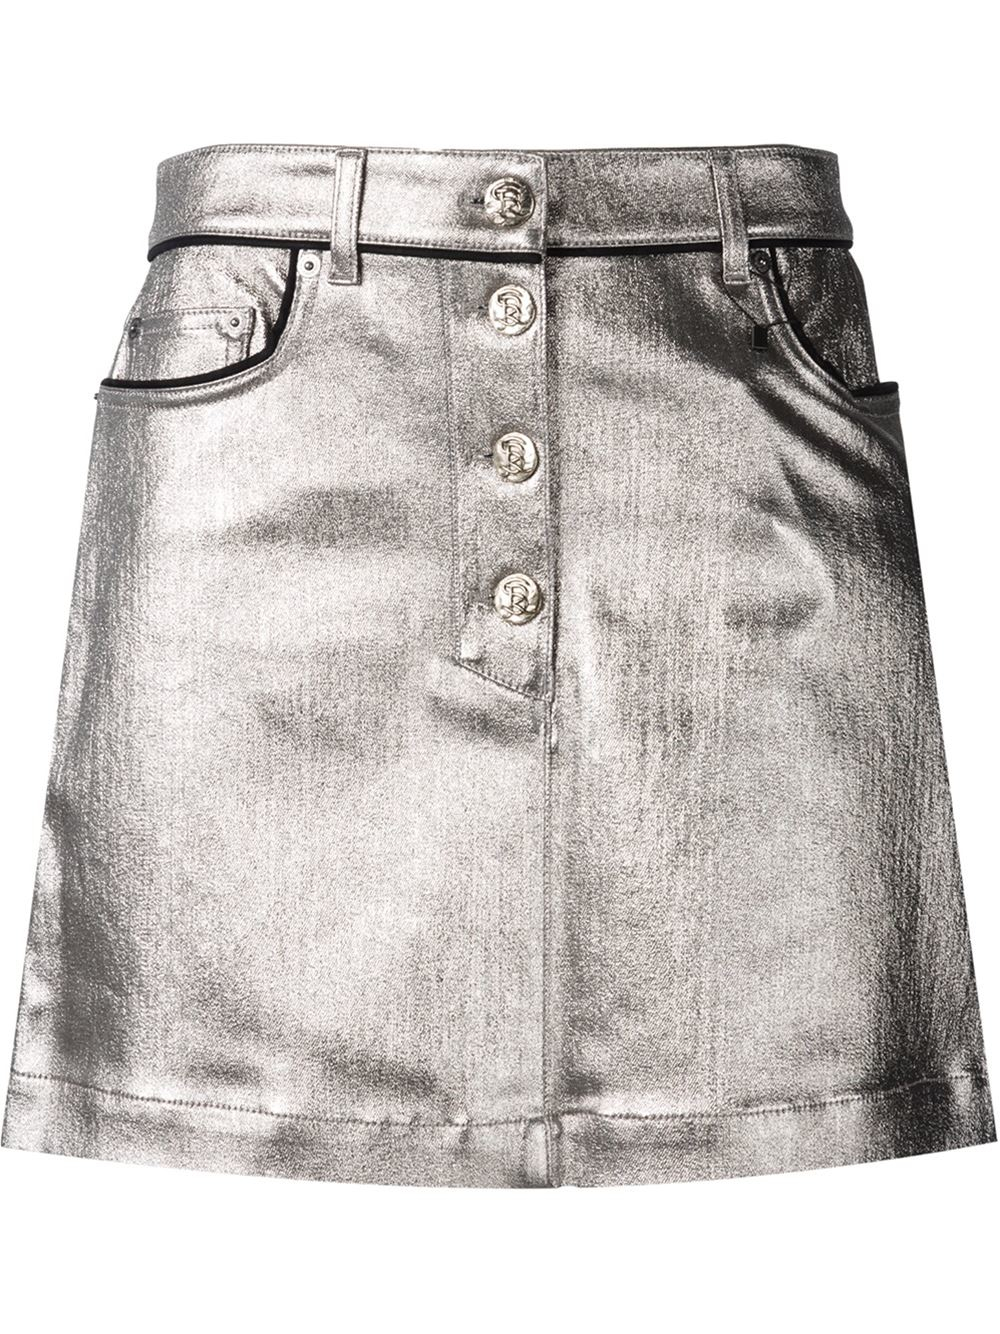 Sonia rykiel Metallic Coated Denim Skirt in Gray | Lyst